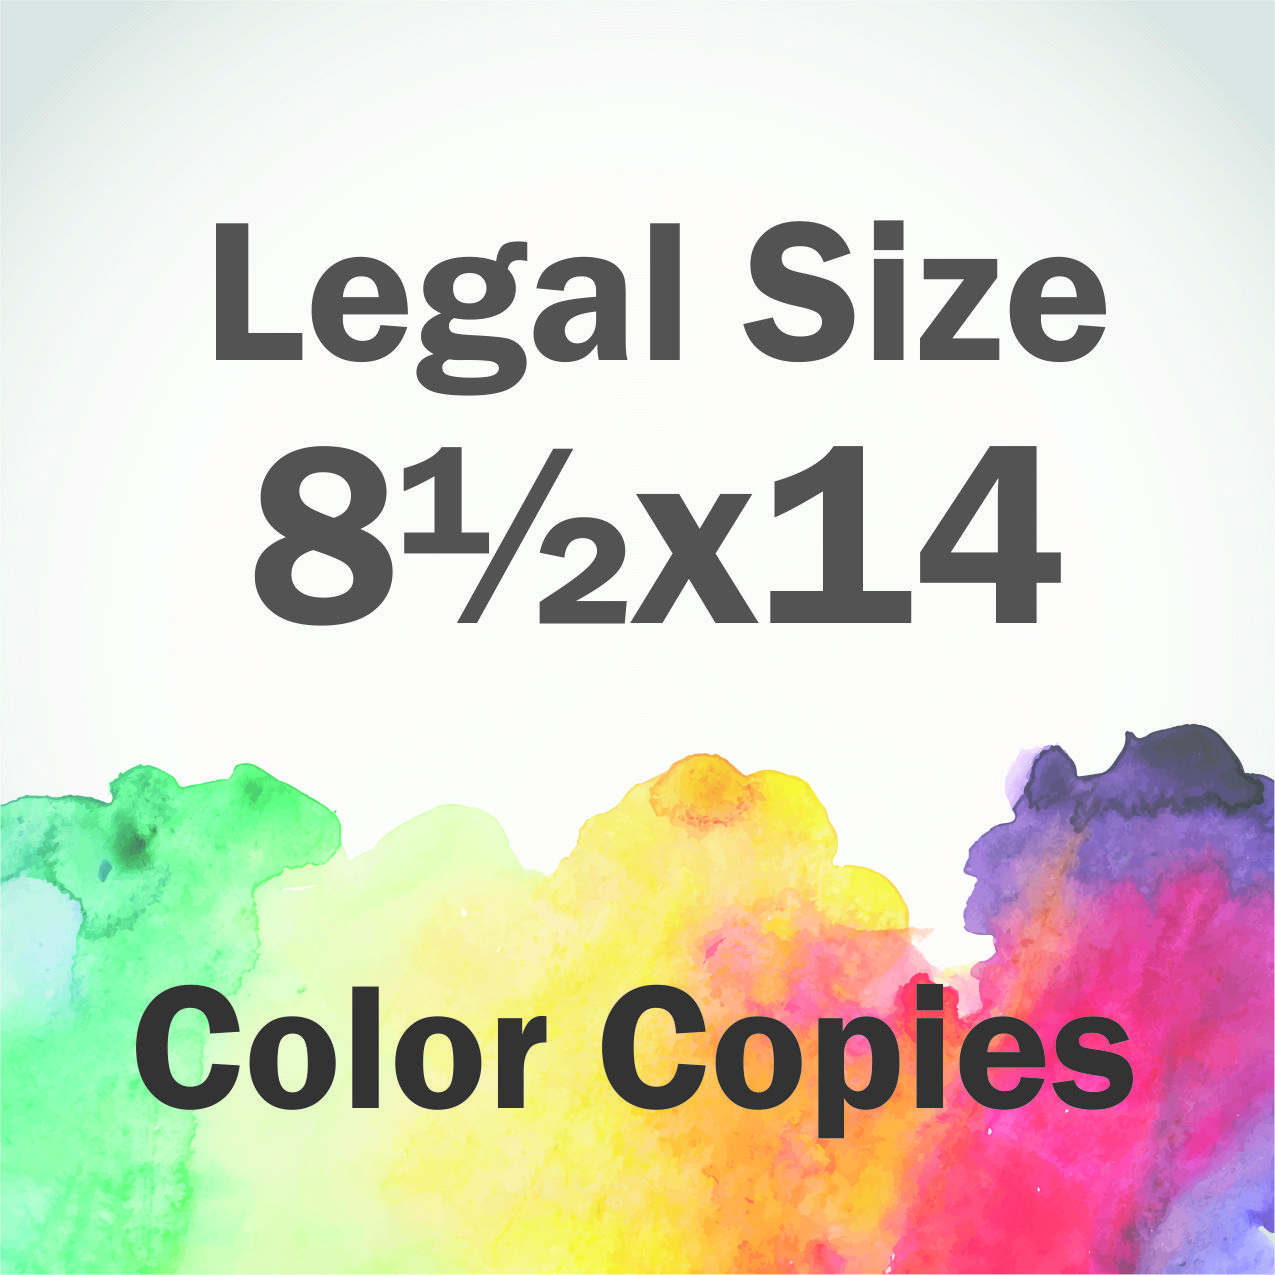 color copies legal size